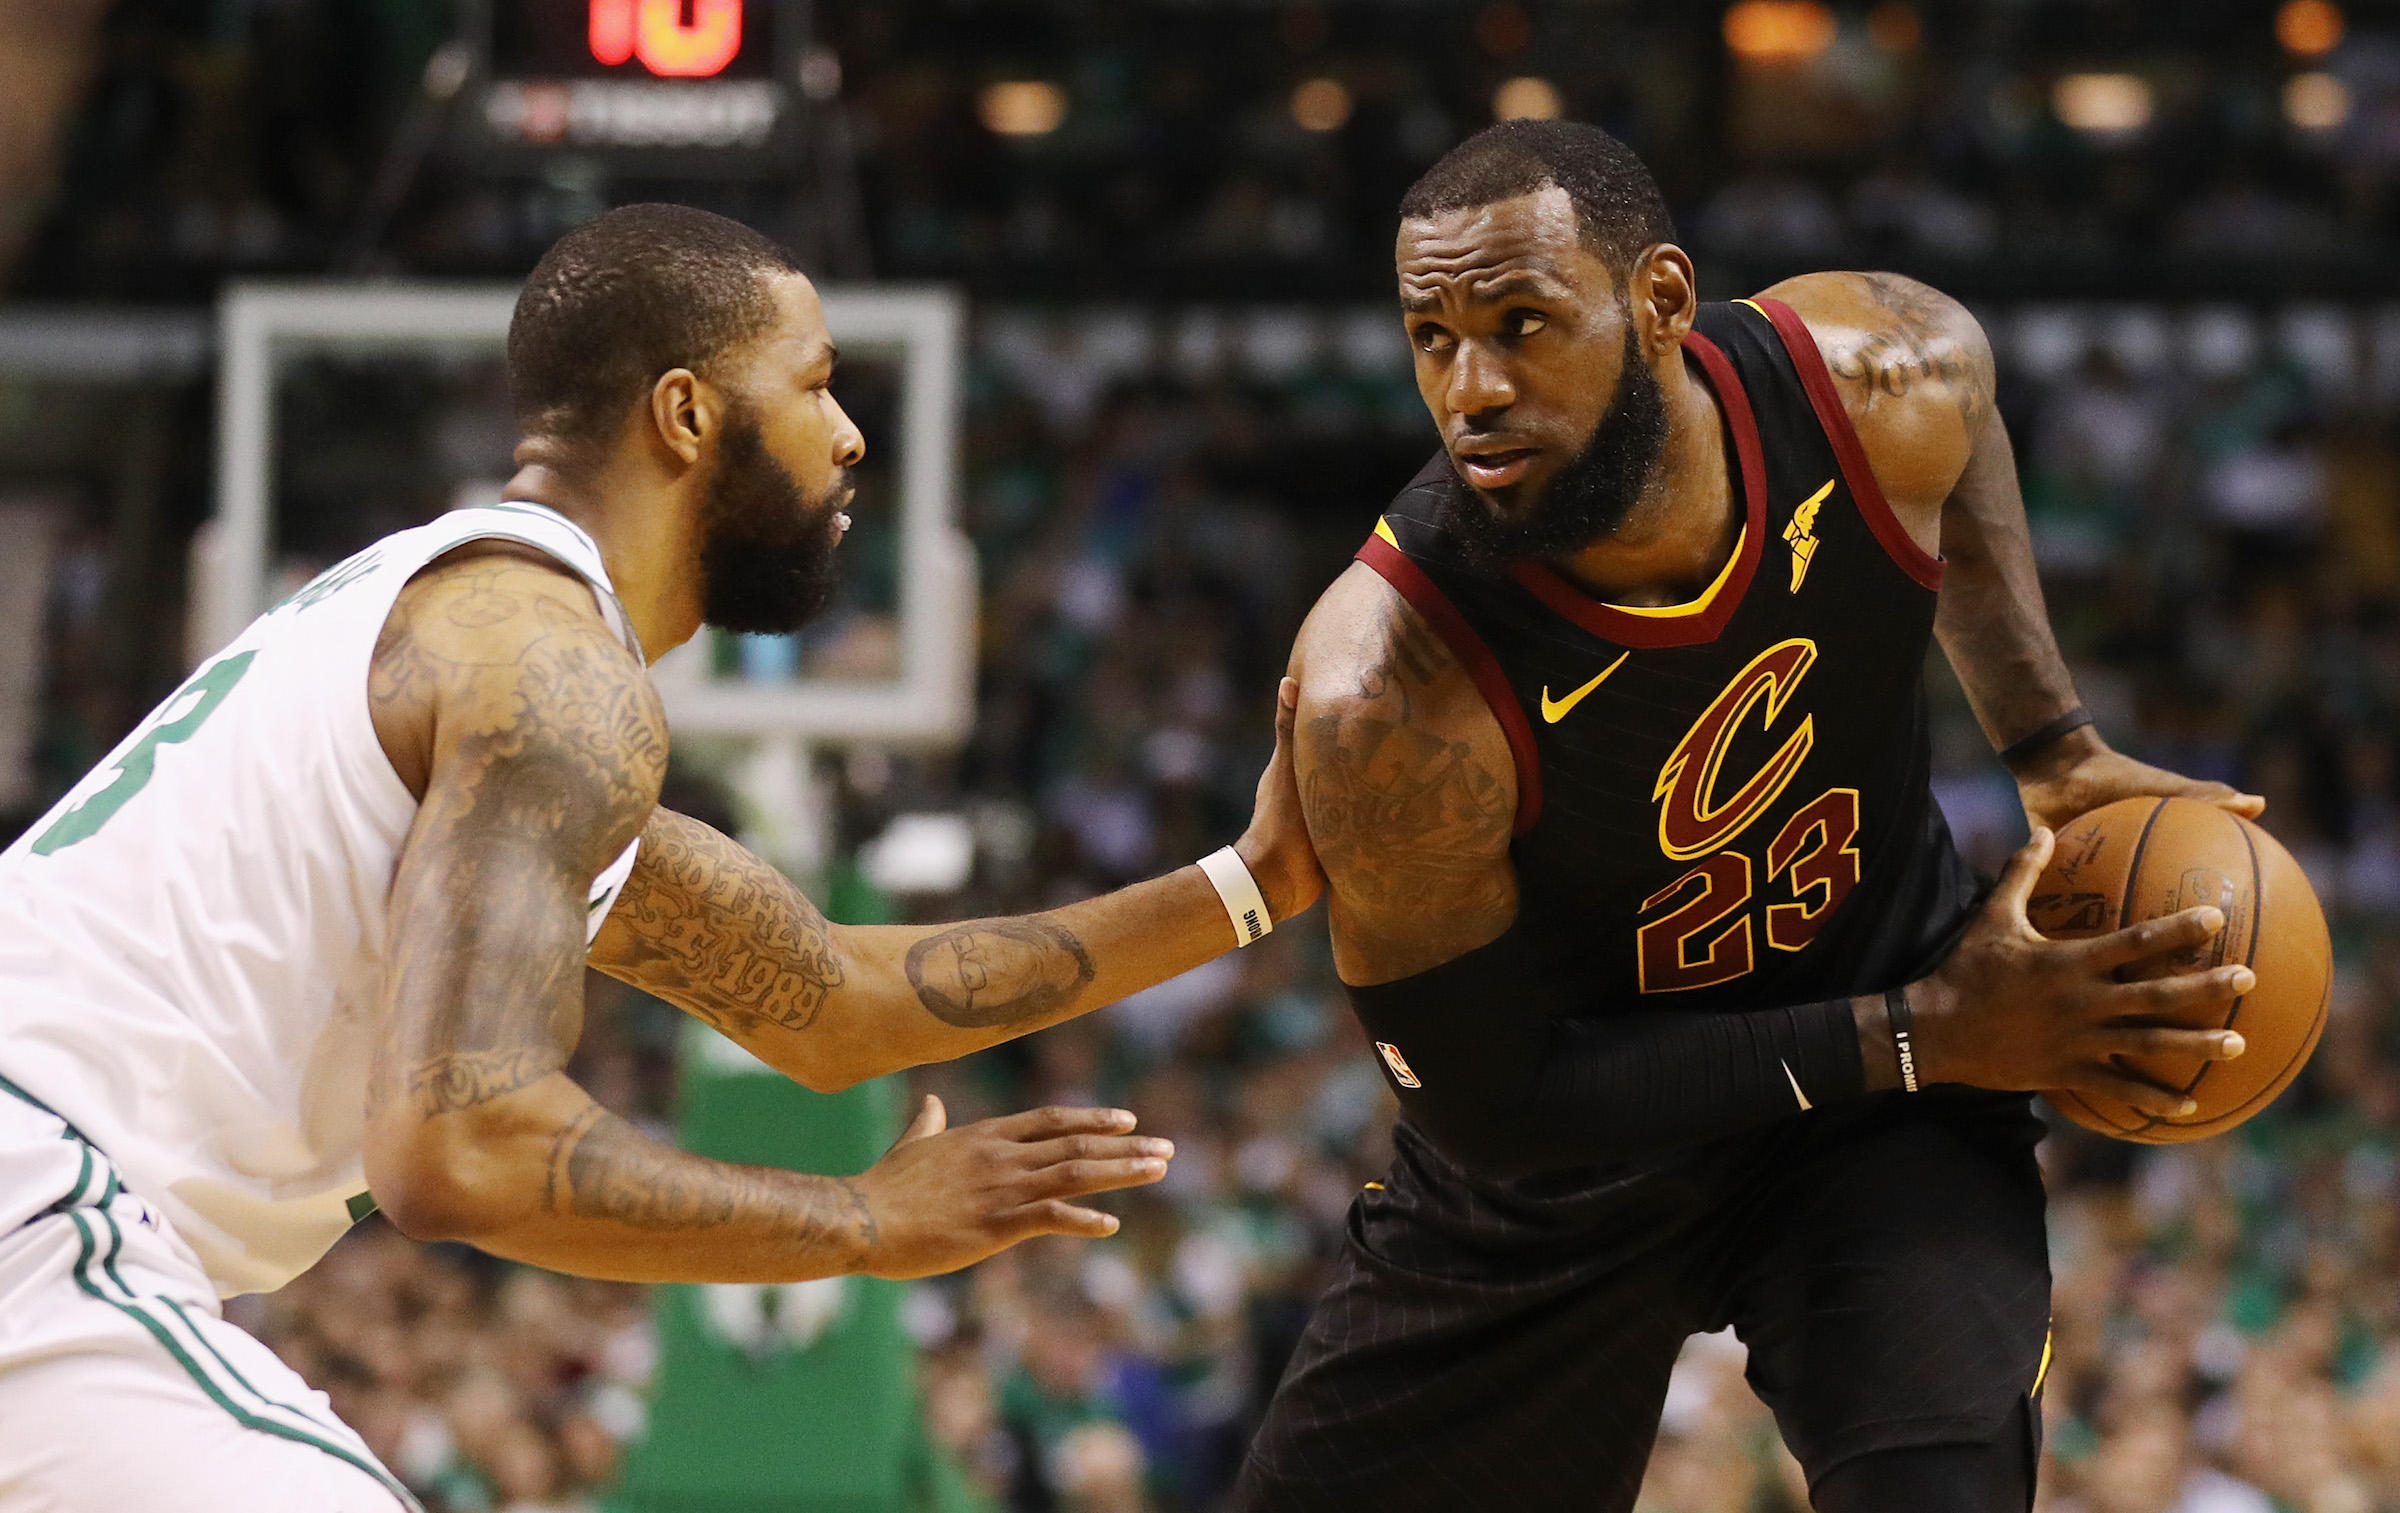 watch nba playoffs 2018: cleveland cavaliers vs. boston celtics